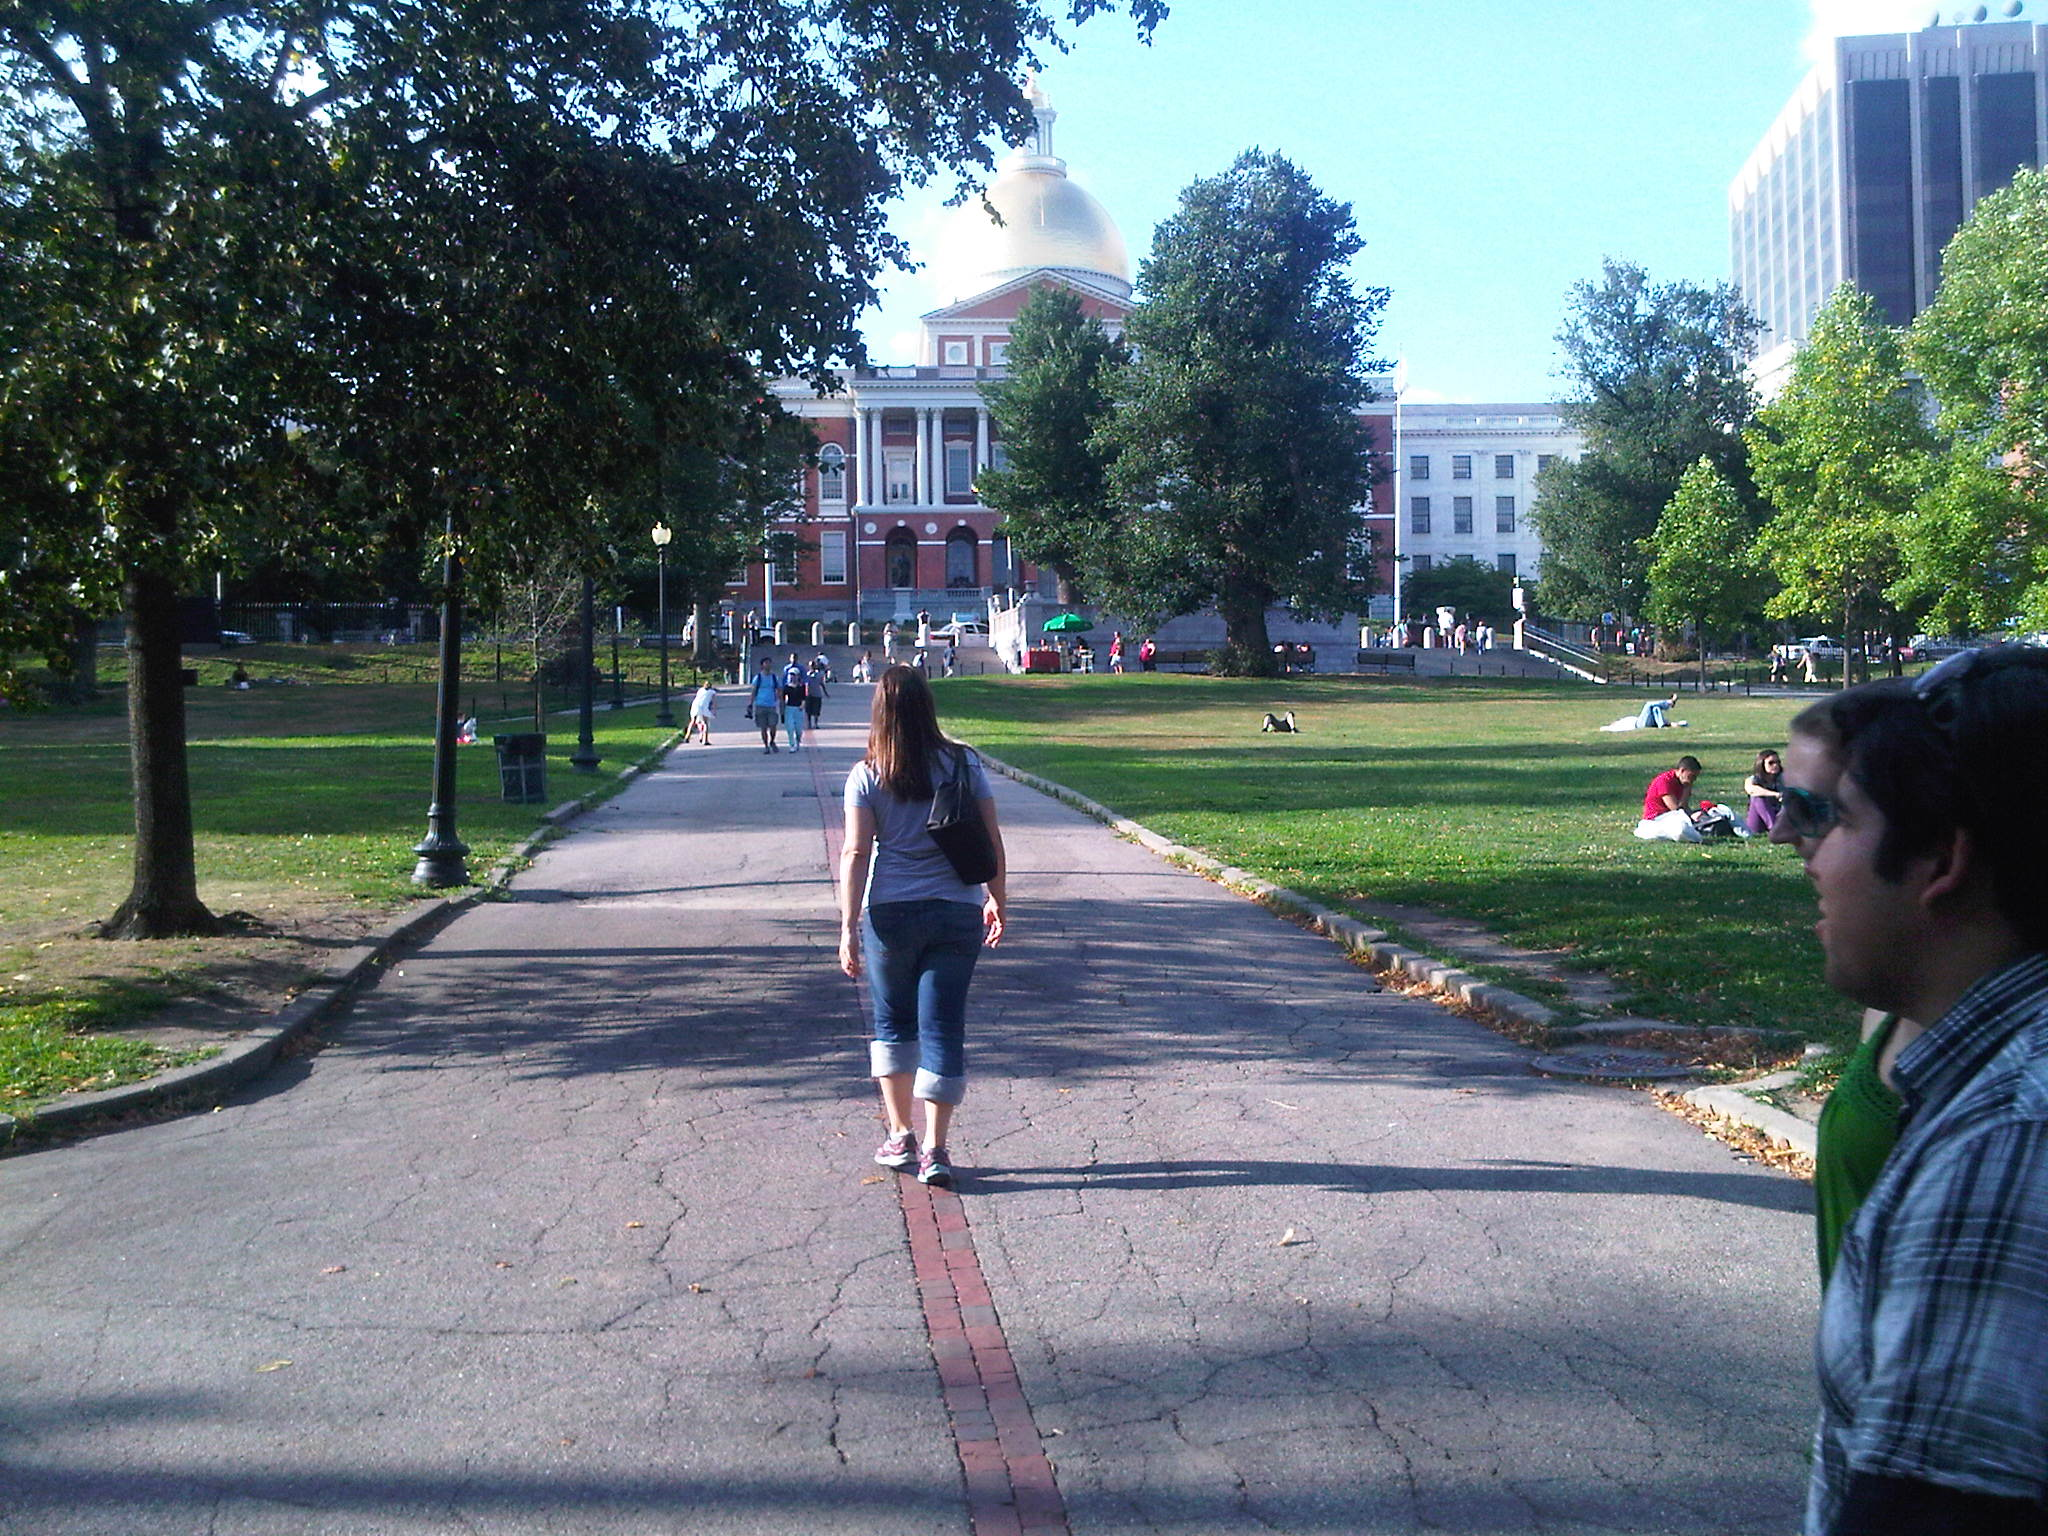 Sights To See On Boston's 'Freedom Trail'